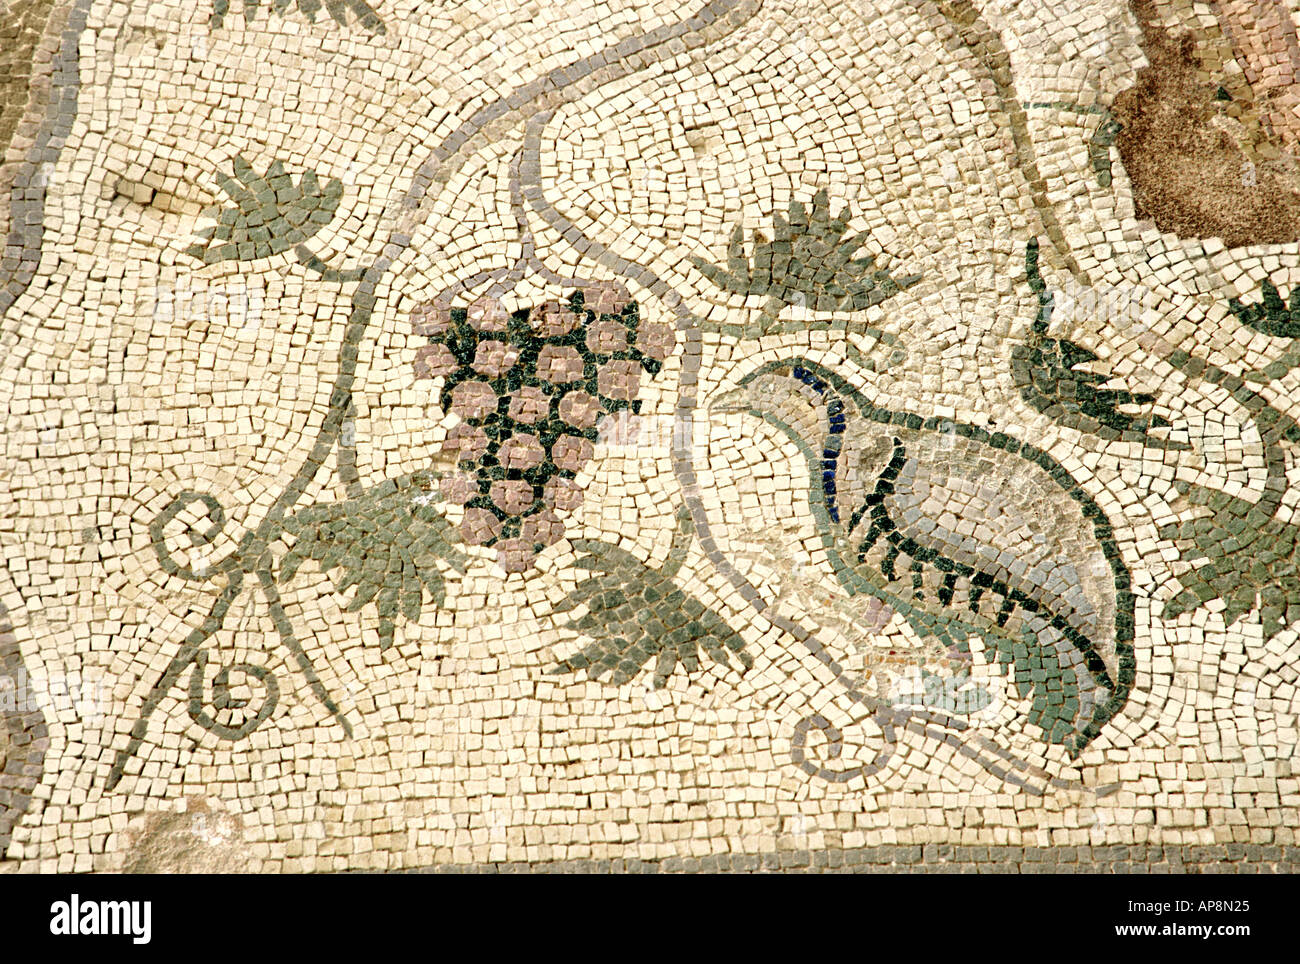 Mosaic of partridge and bunch of grapes ancient Roman Villa at Paphos Cyprus - Stock Image